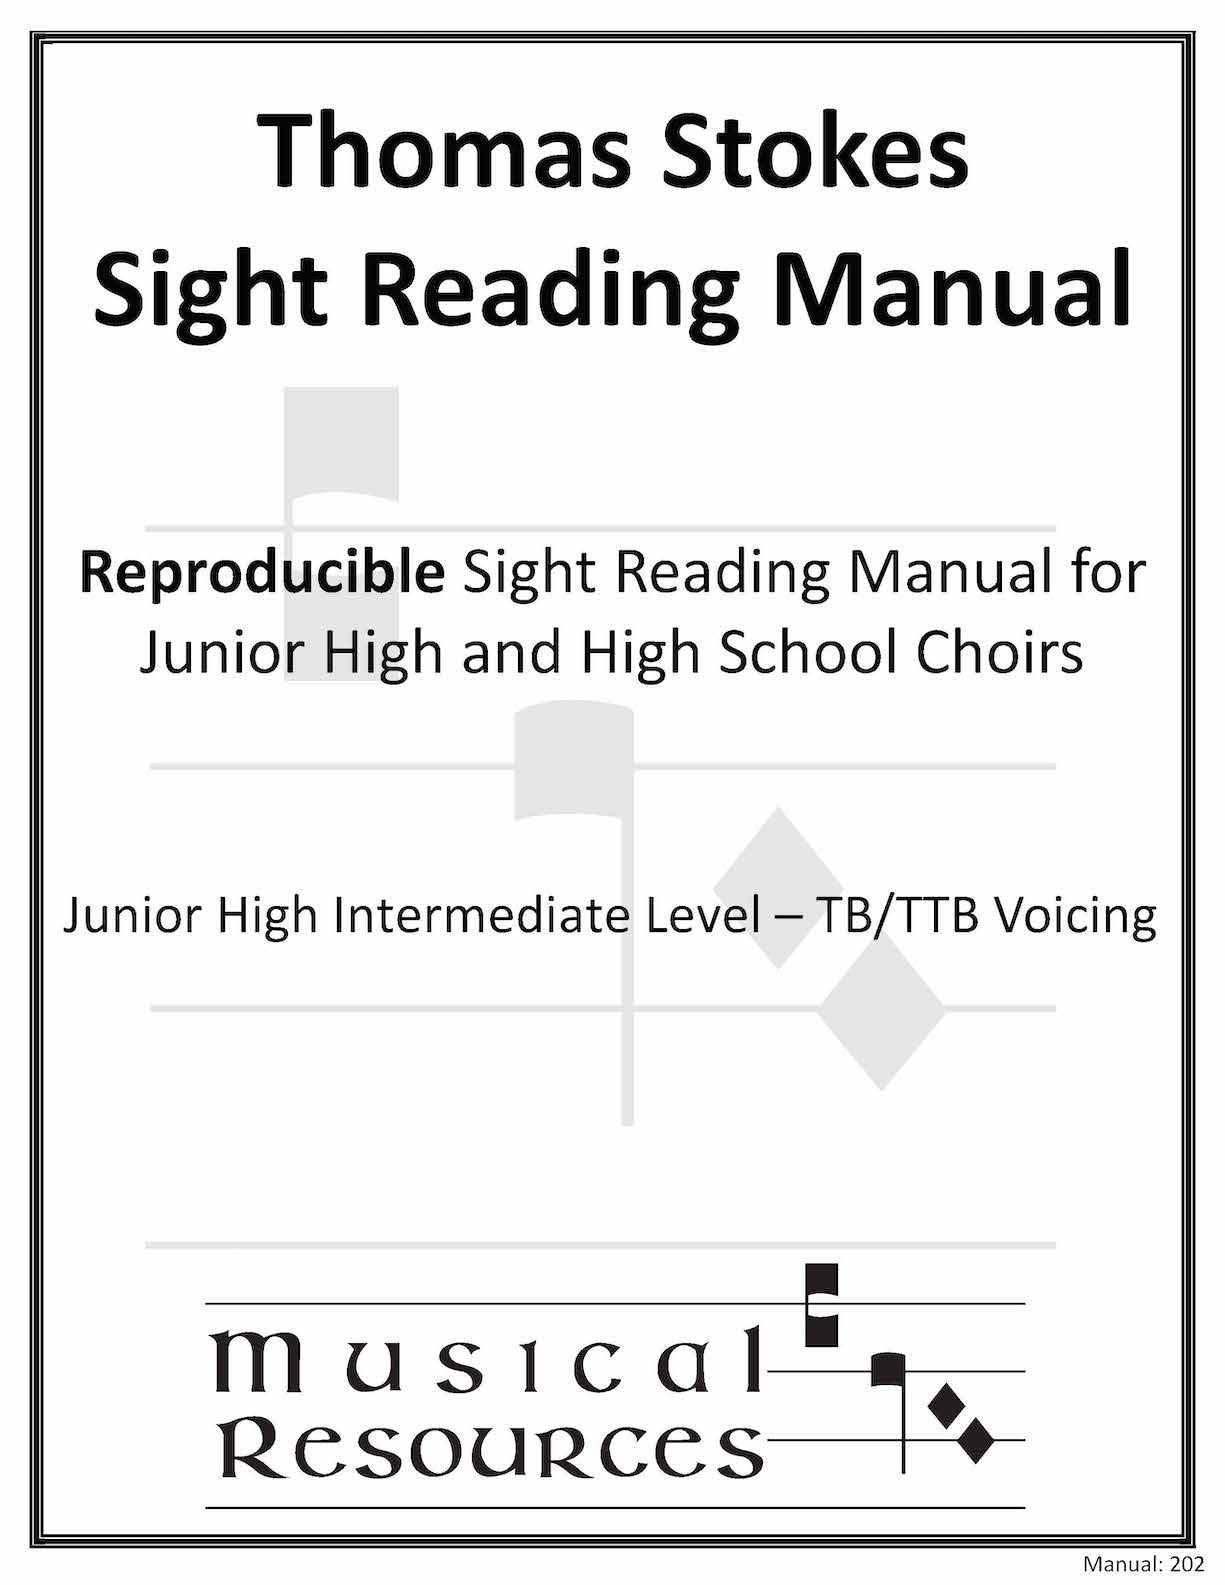 Picture of (Digital) Thomas Stokes Sightreading Manual #202 - TB/TTB Junior High Intermediate